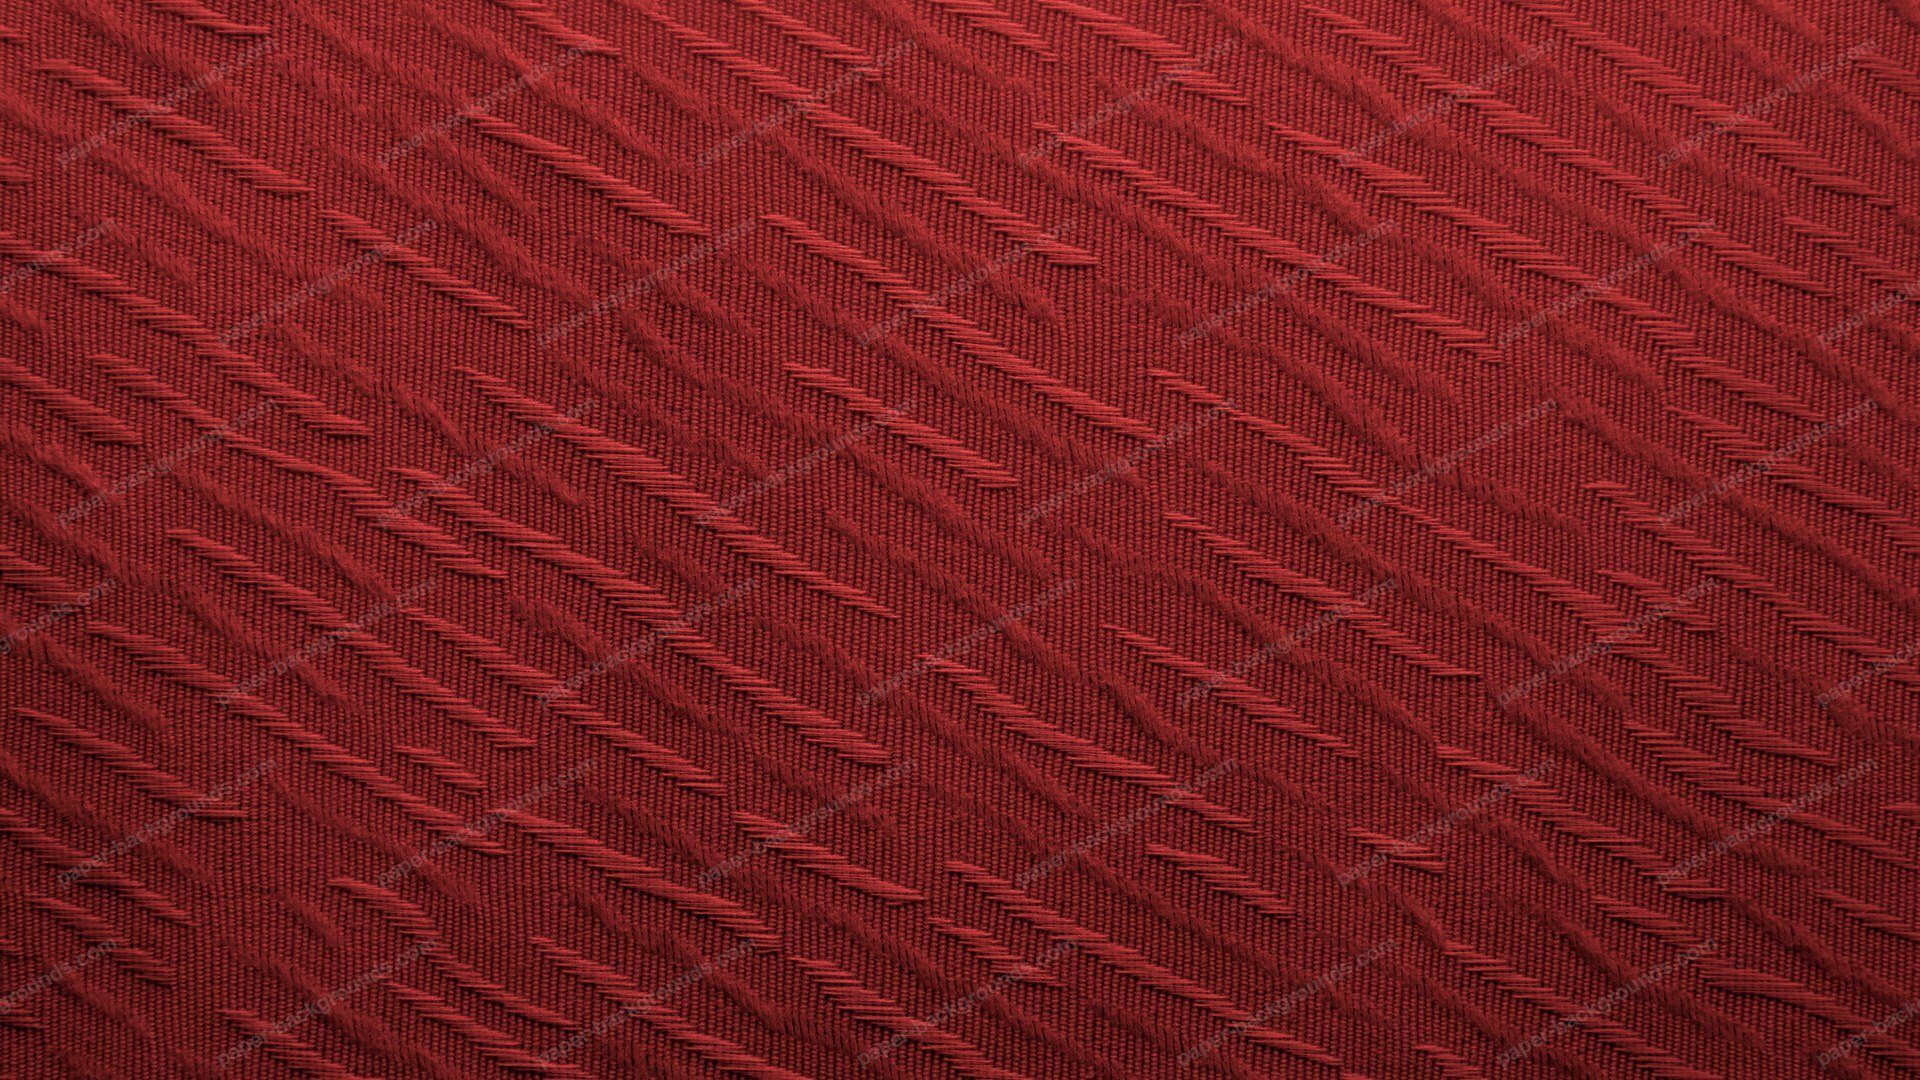 Red Diagonal Decorated Fabric HD 1920 x 1080p